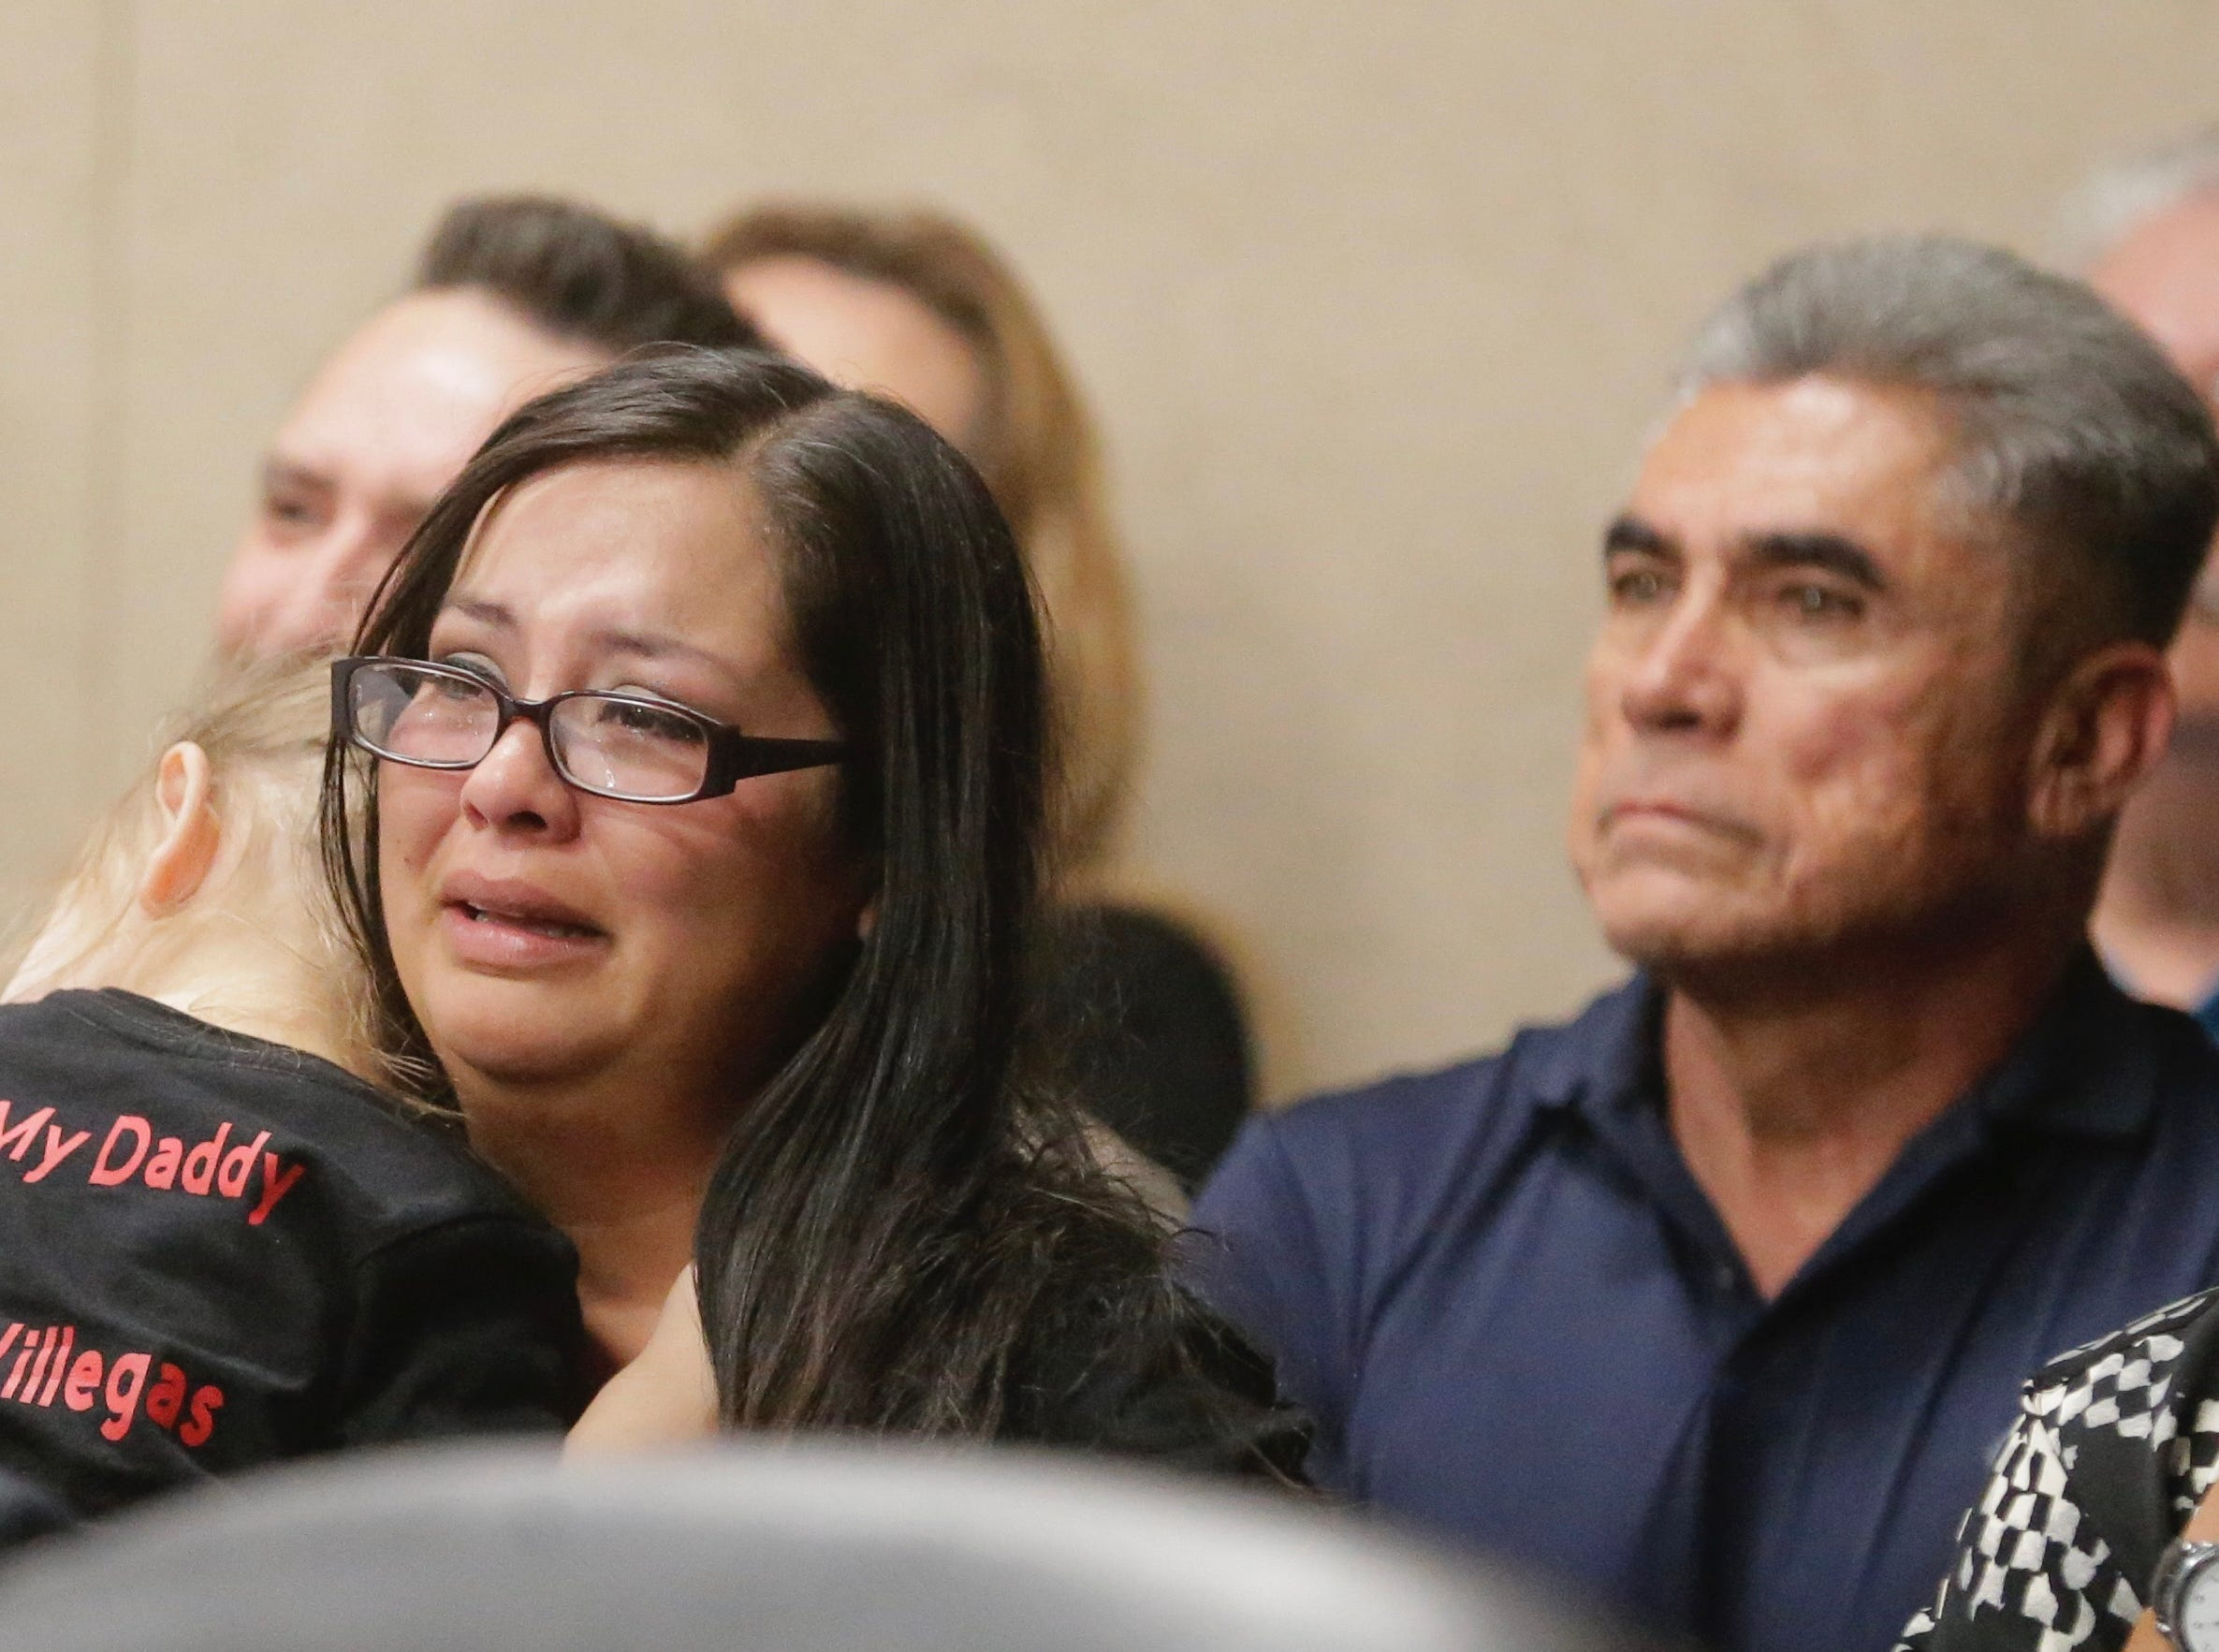 Daniel Villegas' wife, Amanda, holds their daughter and cries as the verdict is read in his third trial for capital murder. The not guilty verdict ends a 25-year-long saga.